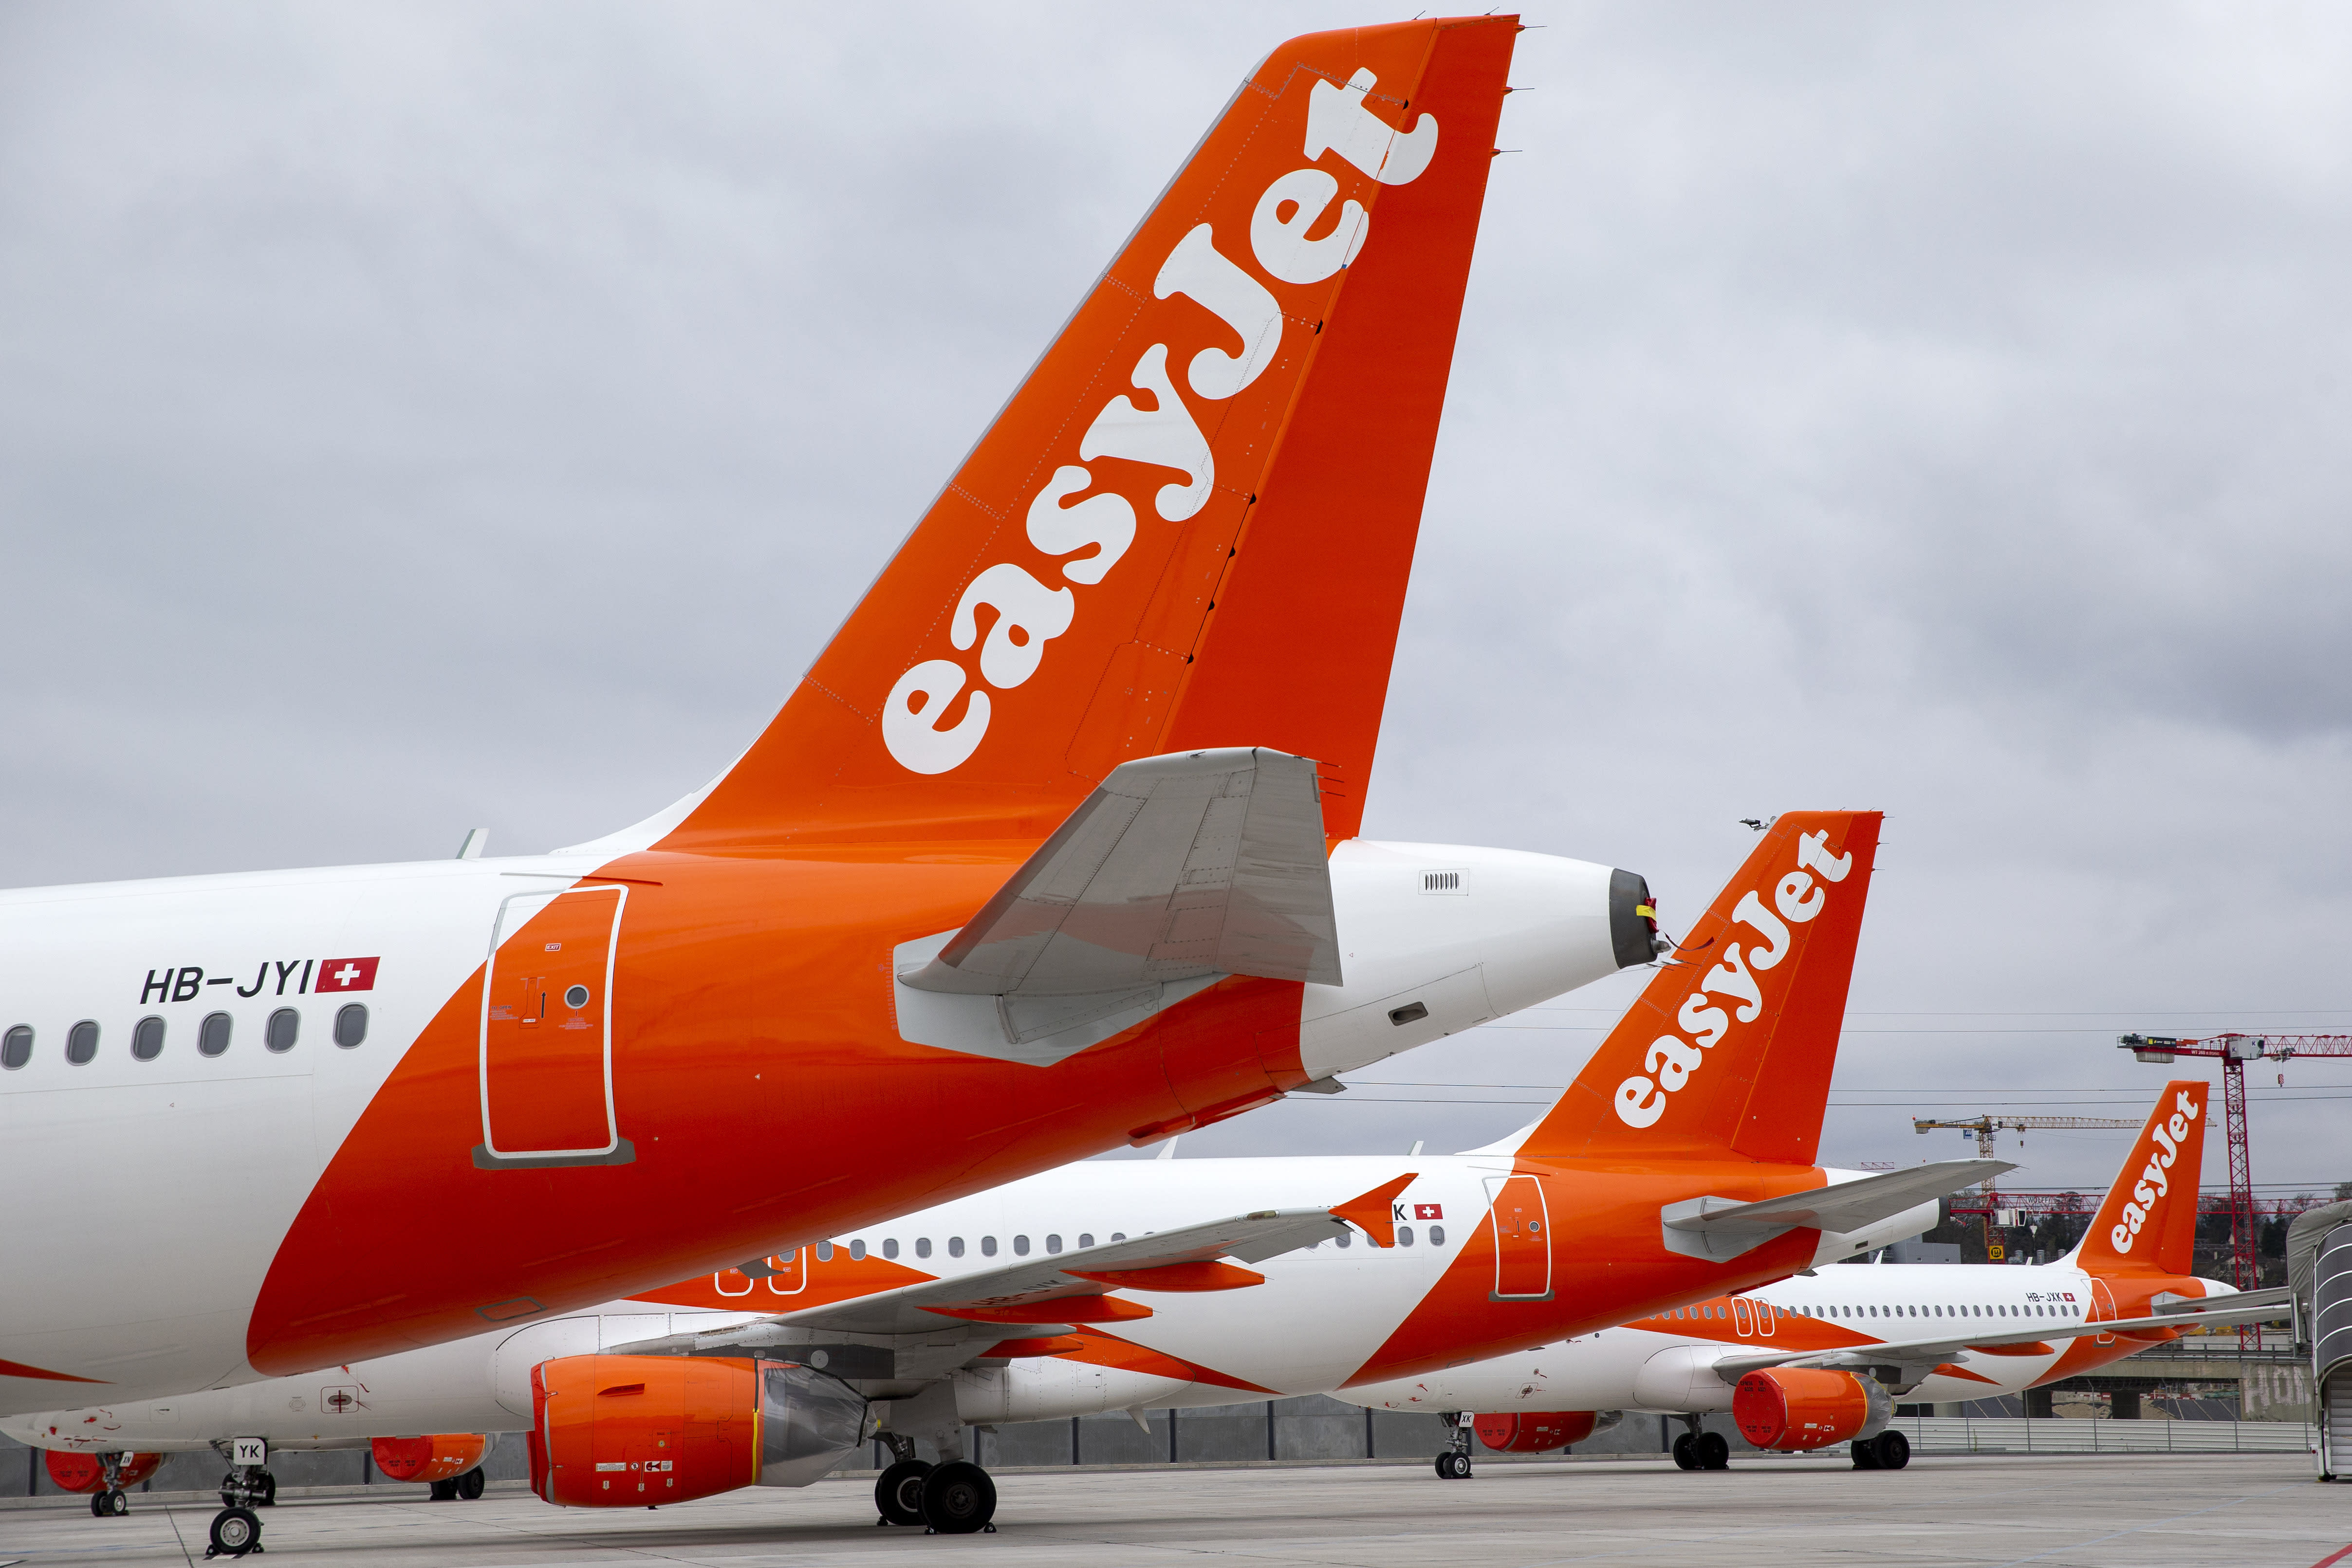 Coronavirus: EasyJet and Carnival 'very likely' to drop out of FTSE 100